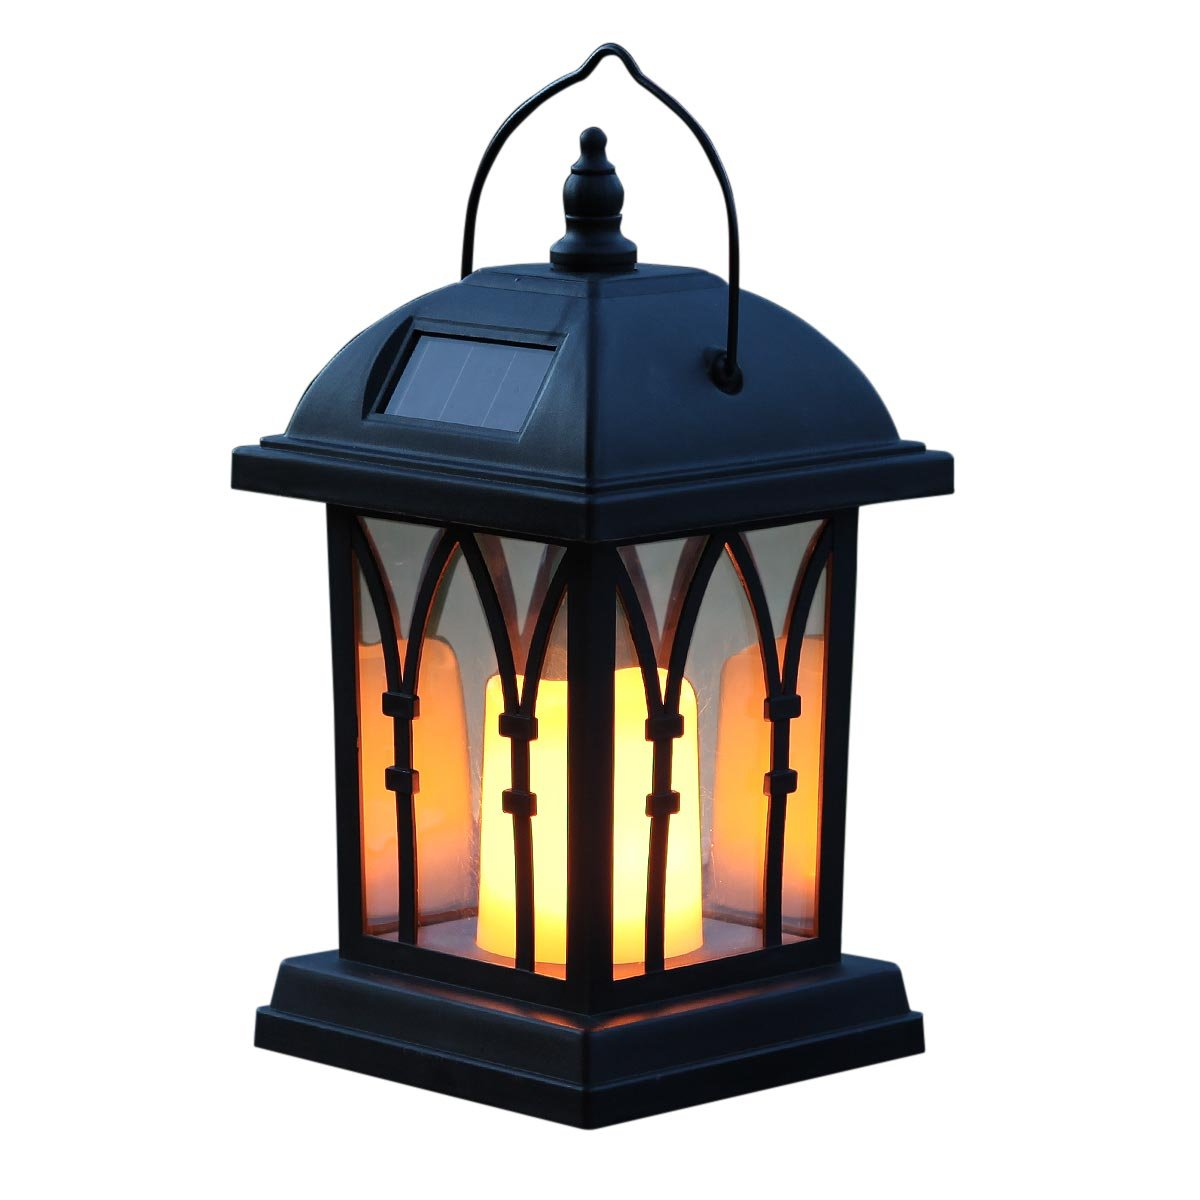 Festive Lights Garden Candle Lantern - Solar Powered - Flickering Effect - Amber LED - 27cm